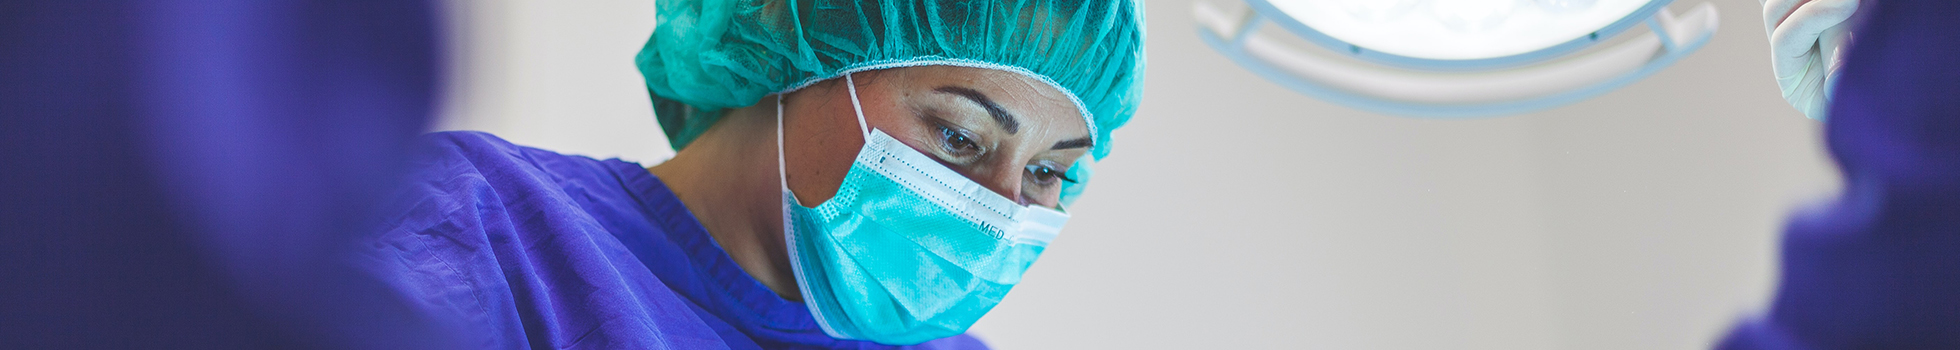 Woman in scrubs and mask.